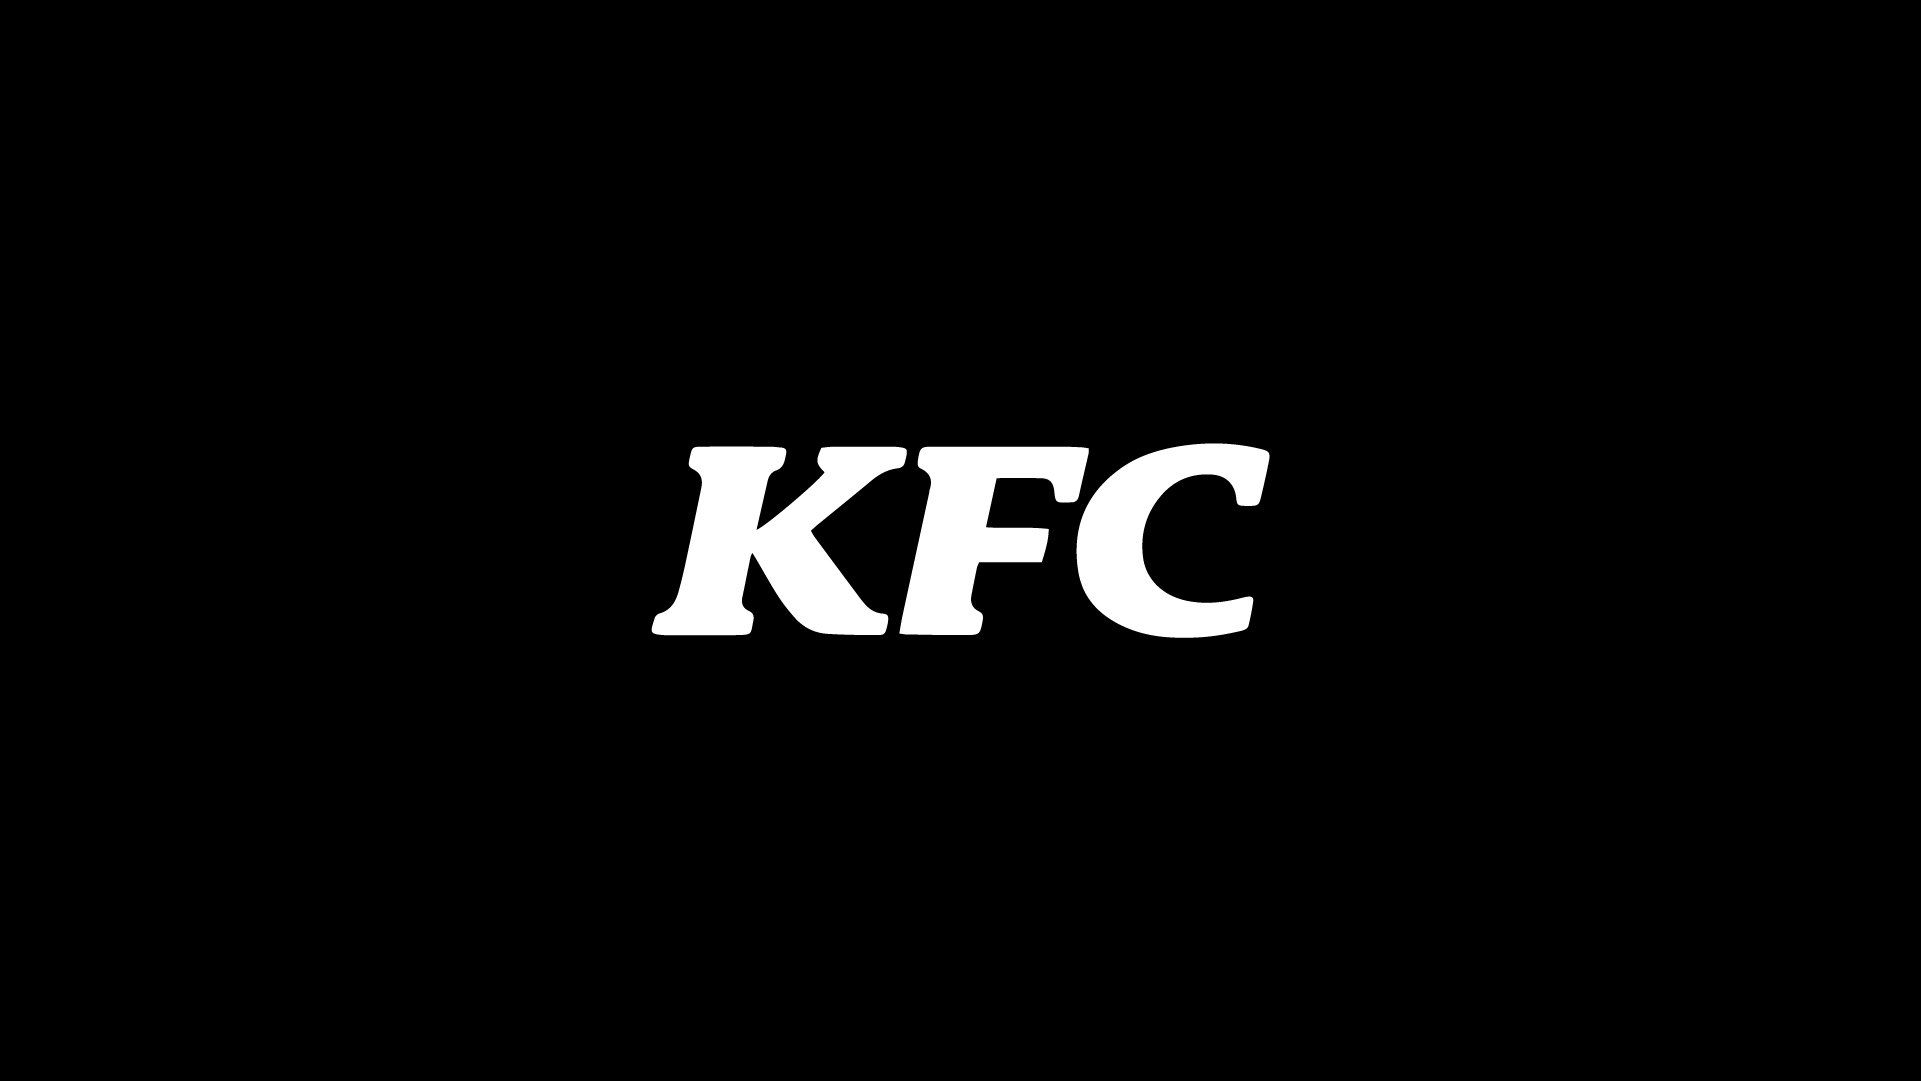 SFERA KFC MERCH 2020 graphics slider 03